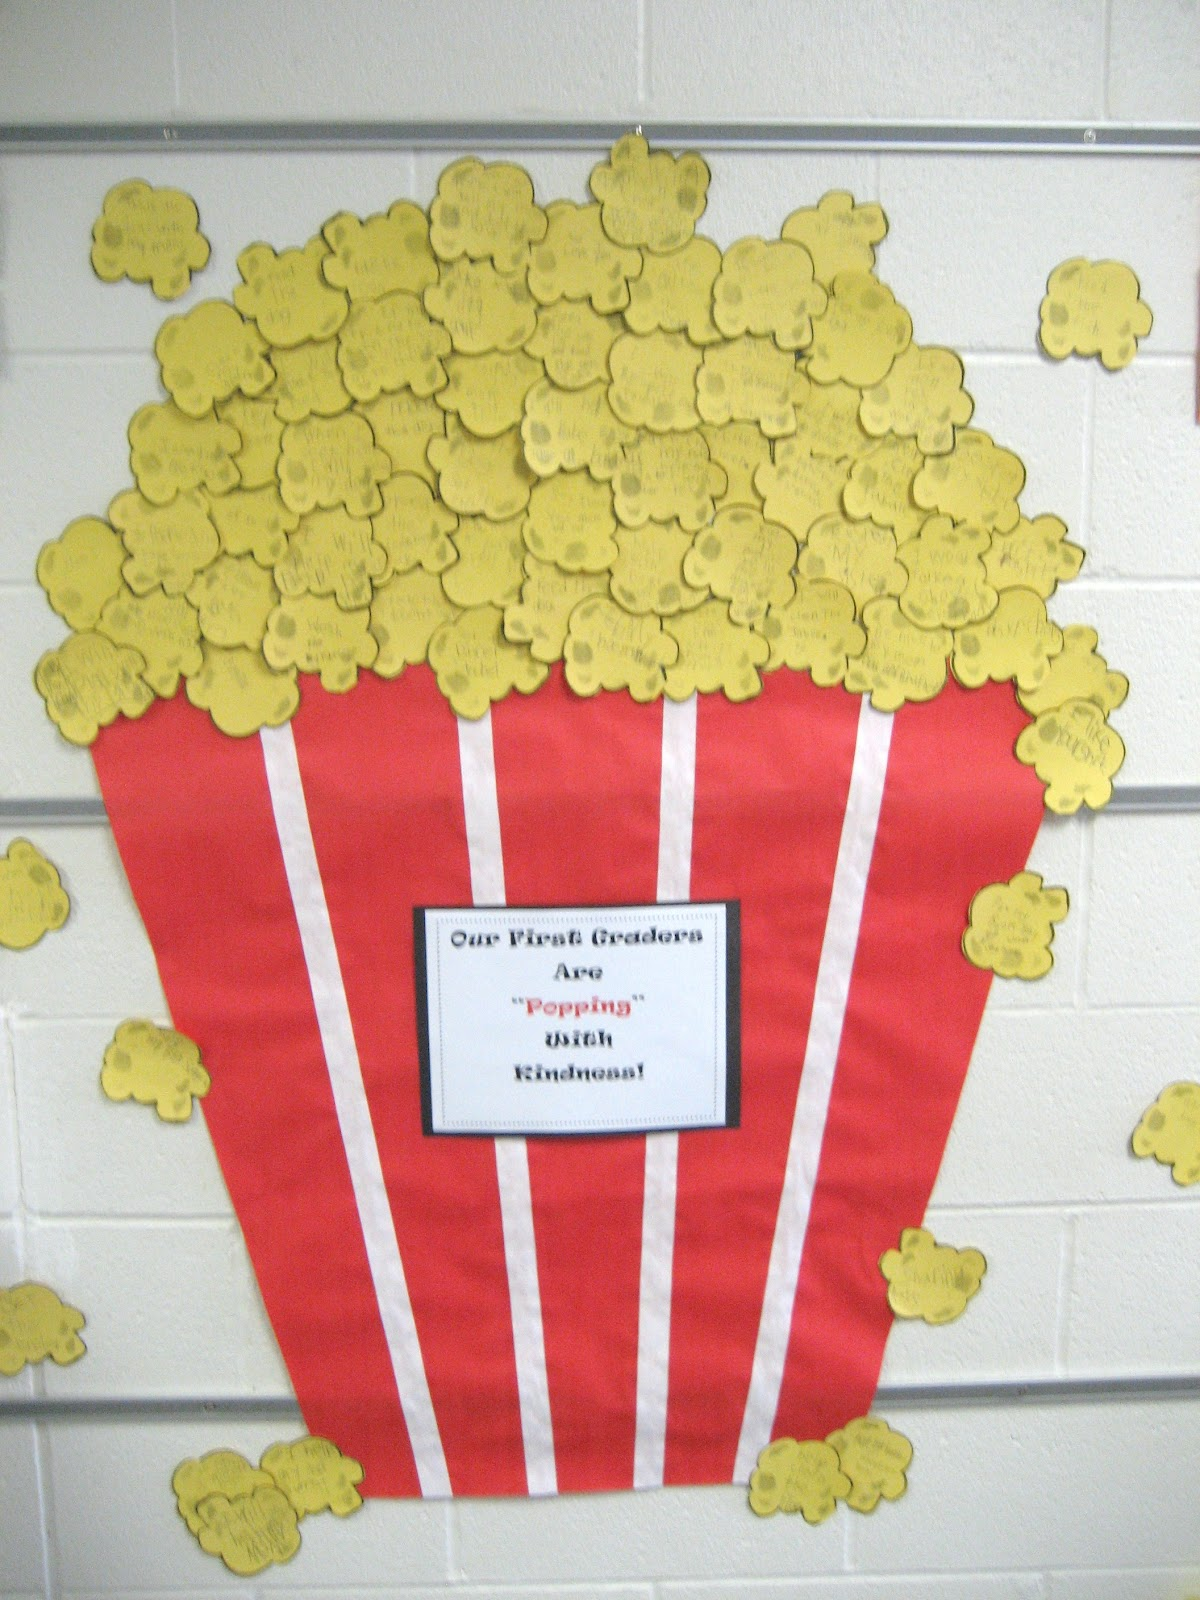 d1175bc49 The Weekly Hive: State School of Character & Valentine's Day Party!